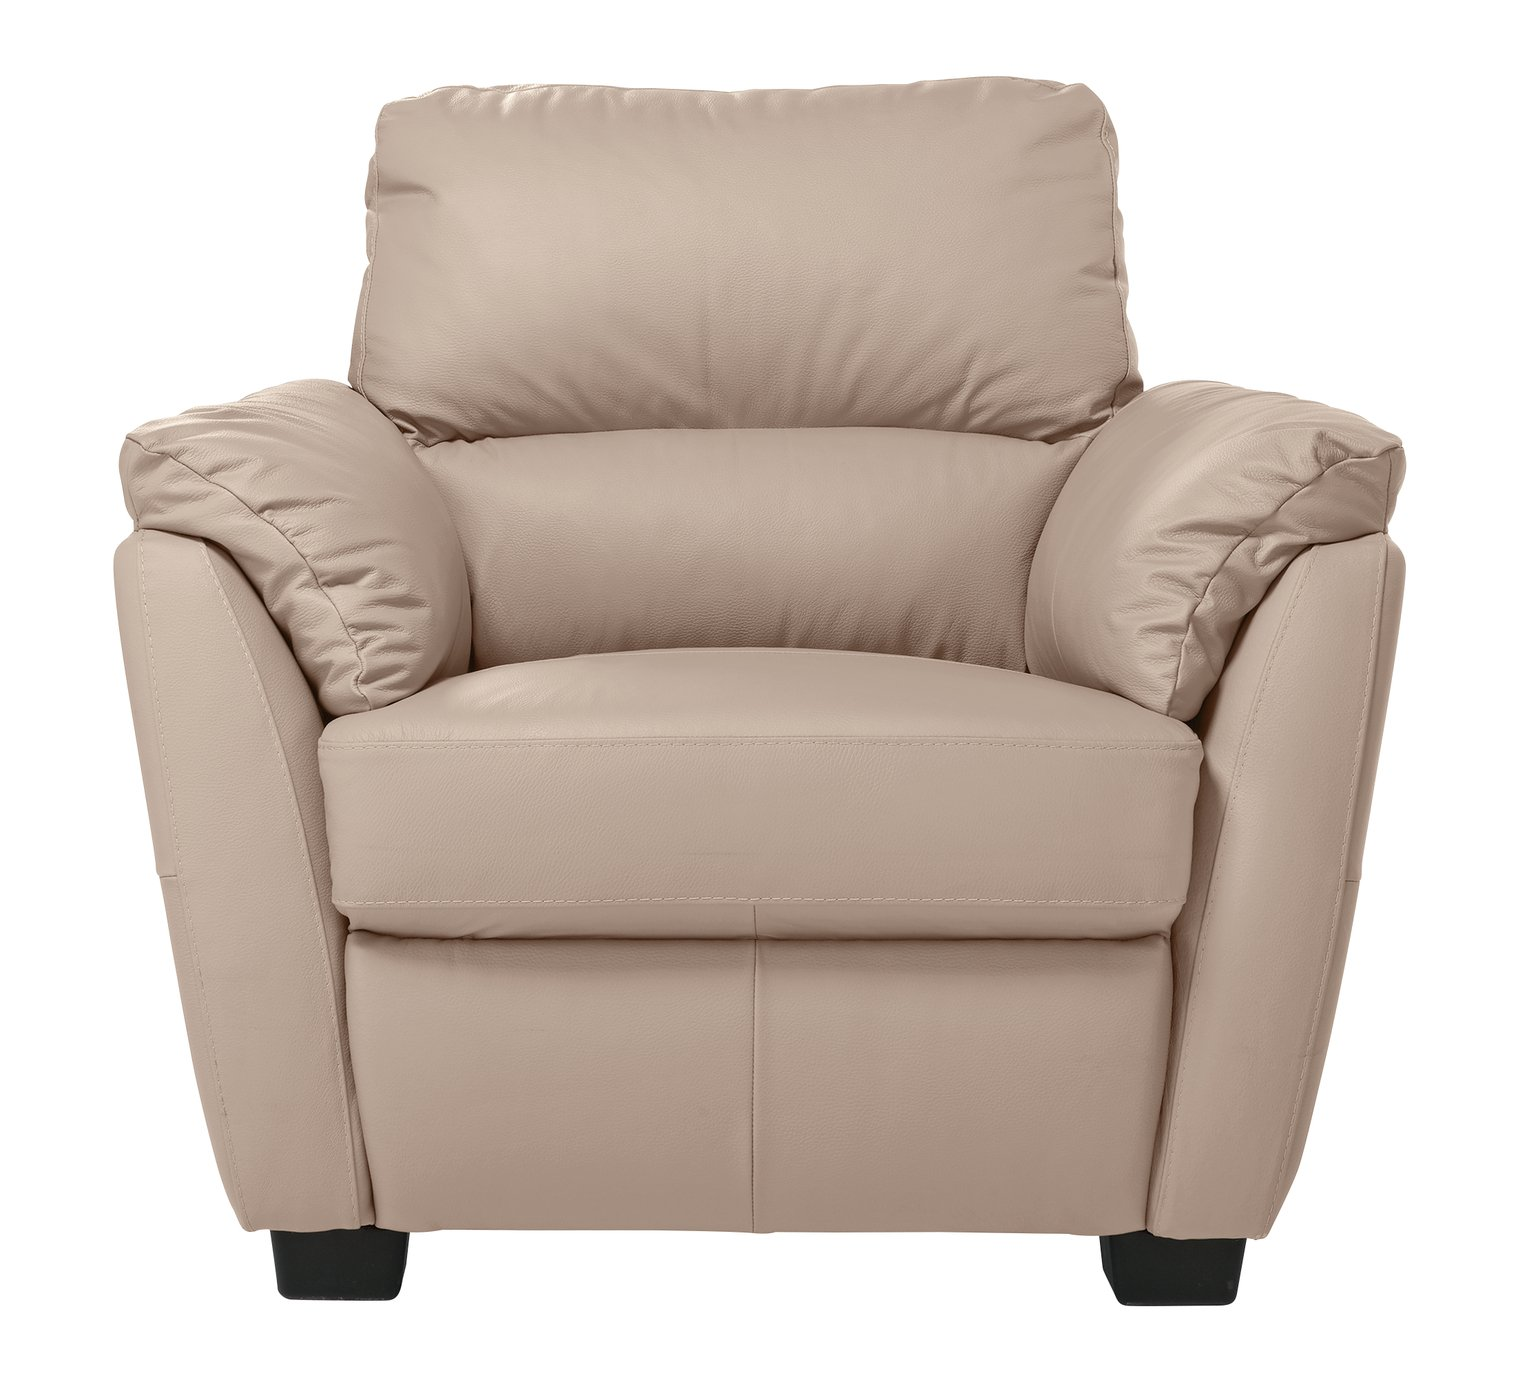 Argos Home Trieste Leather Armchair - Taupe